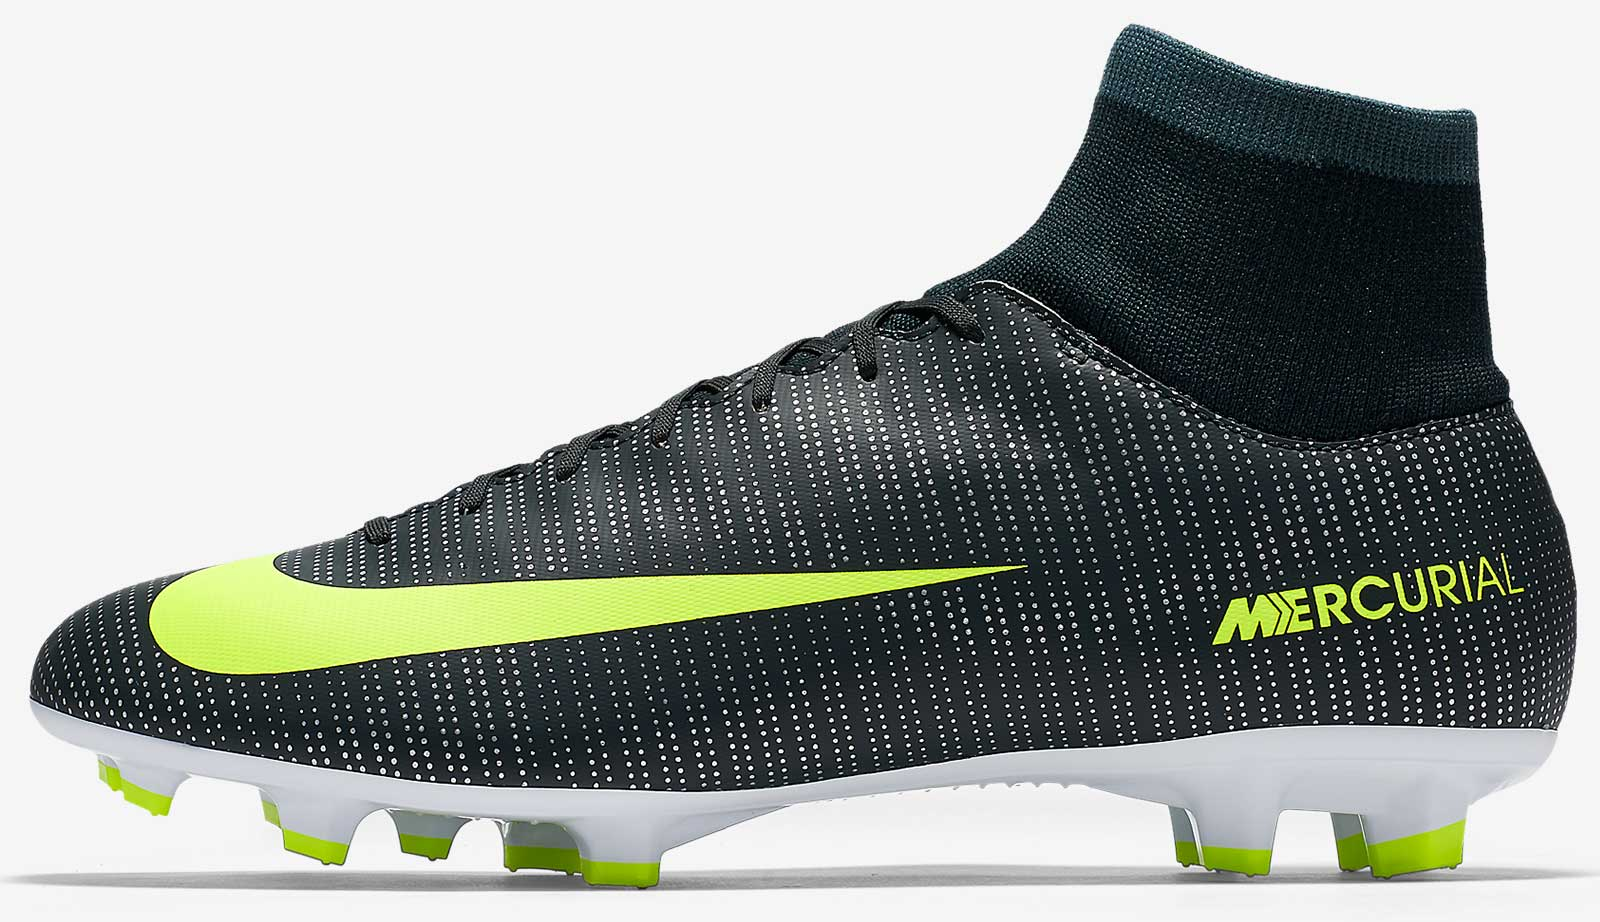 nike adds dynamic fit collar to mercurial victory footy. Black Bedroom Furniture Sets. Home Design Ideas